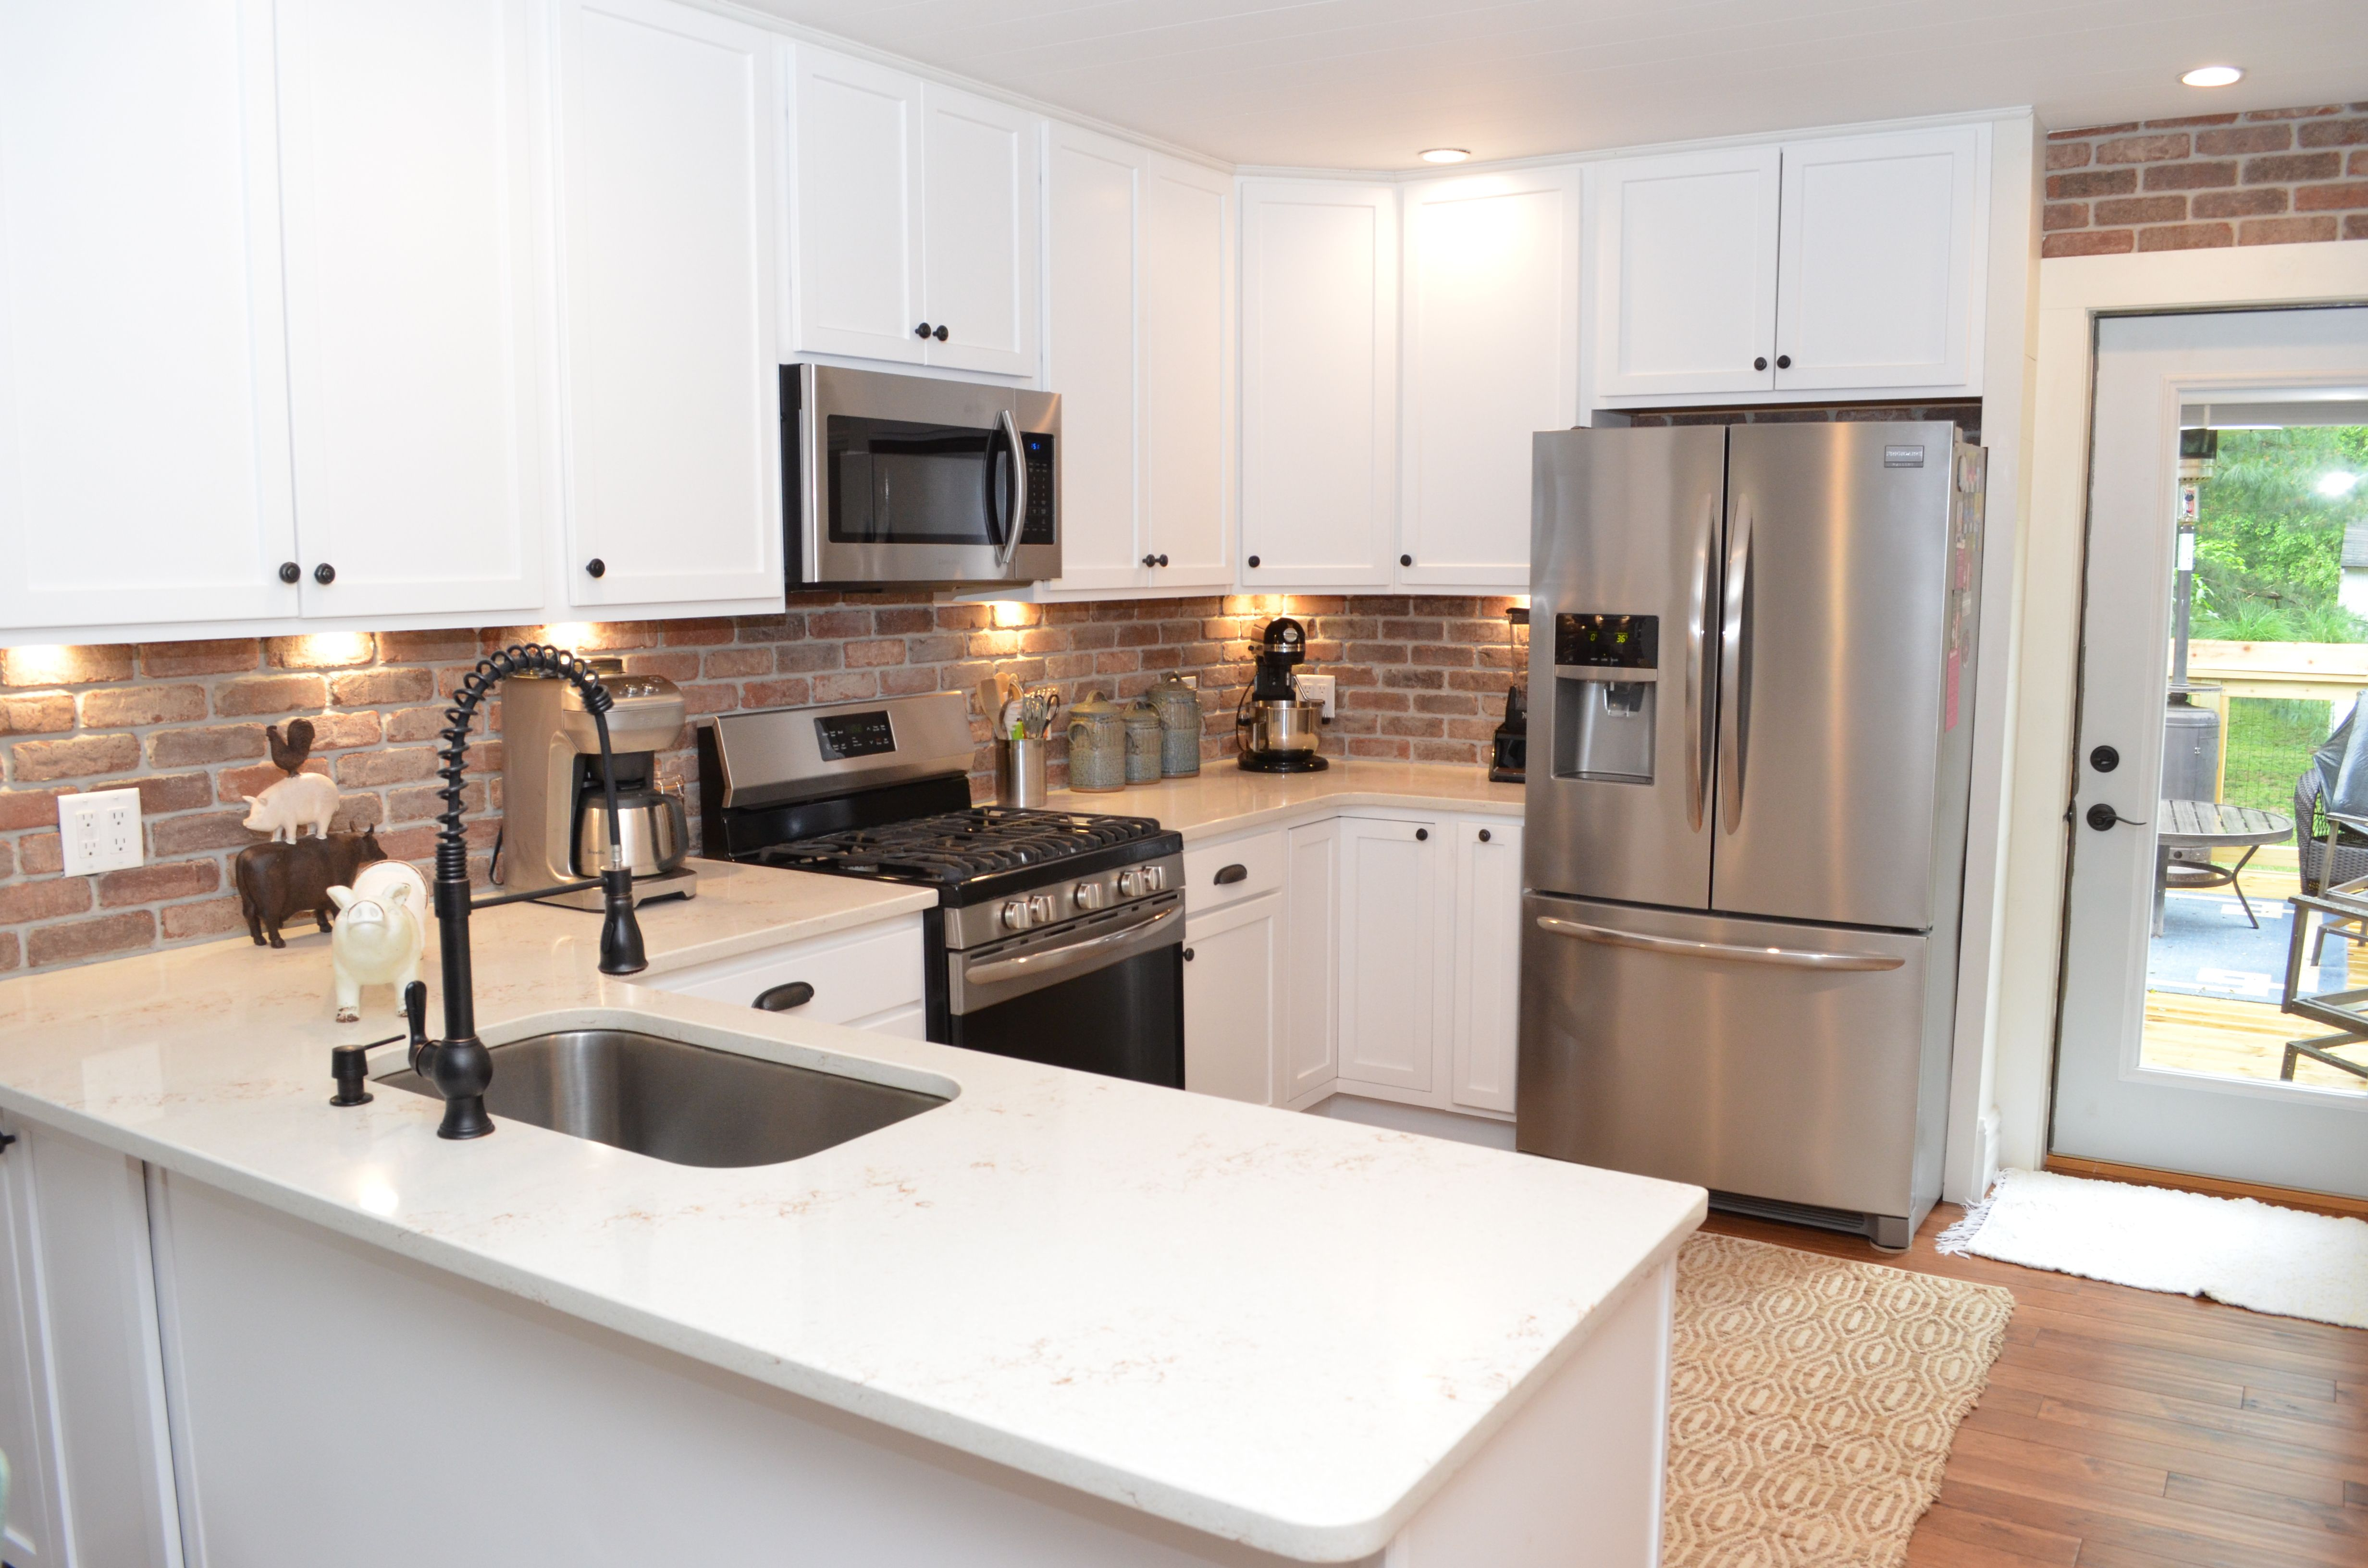 Door Style Hometown Wood Species Maple Finish White C Haas Cabinet Kitchen Cabinetry White Quartz Countertop Quality Cabinets